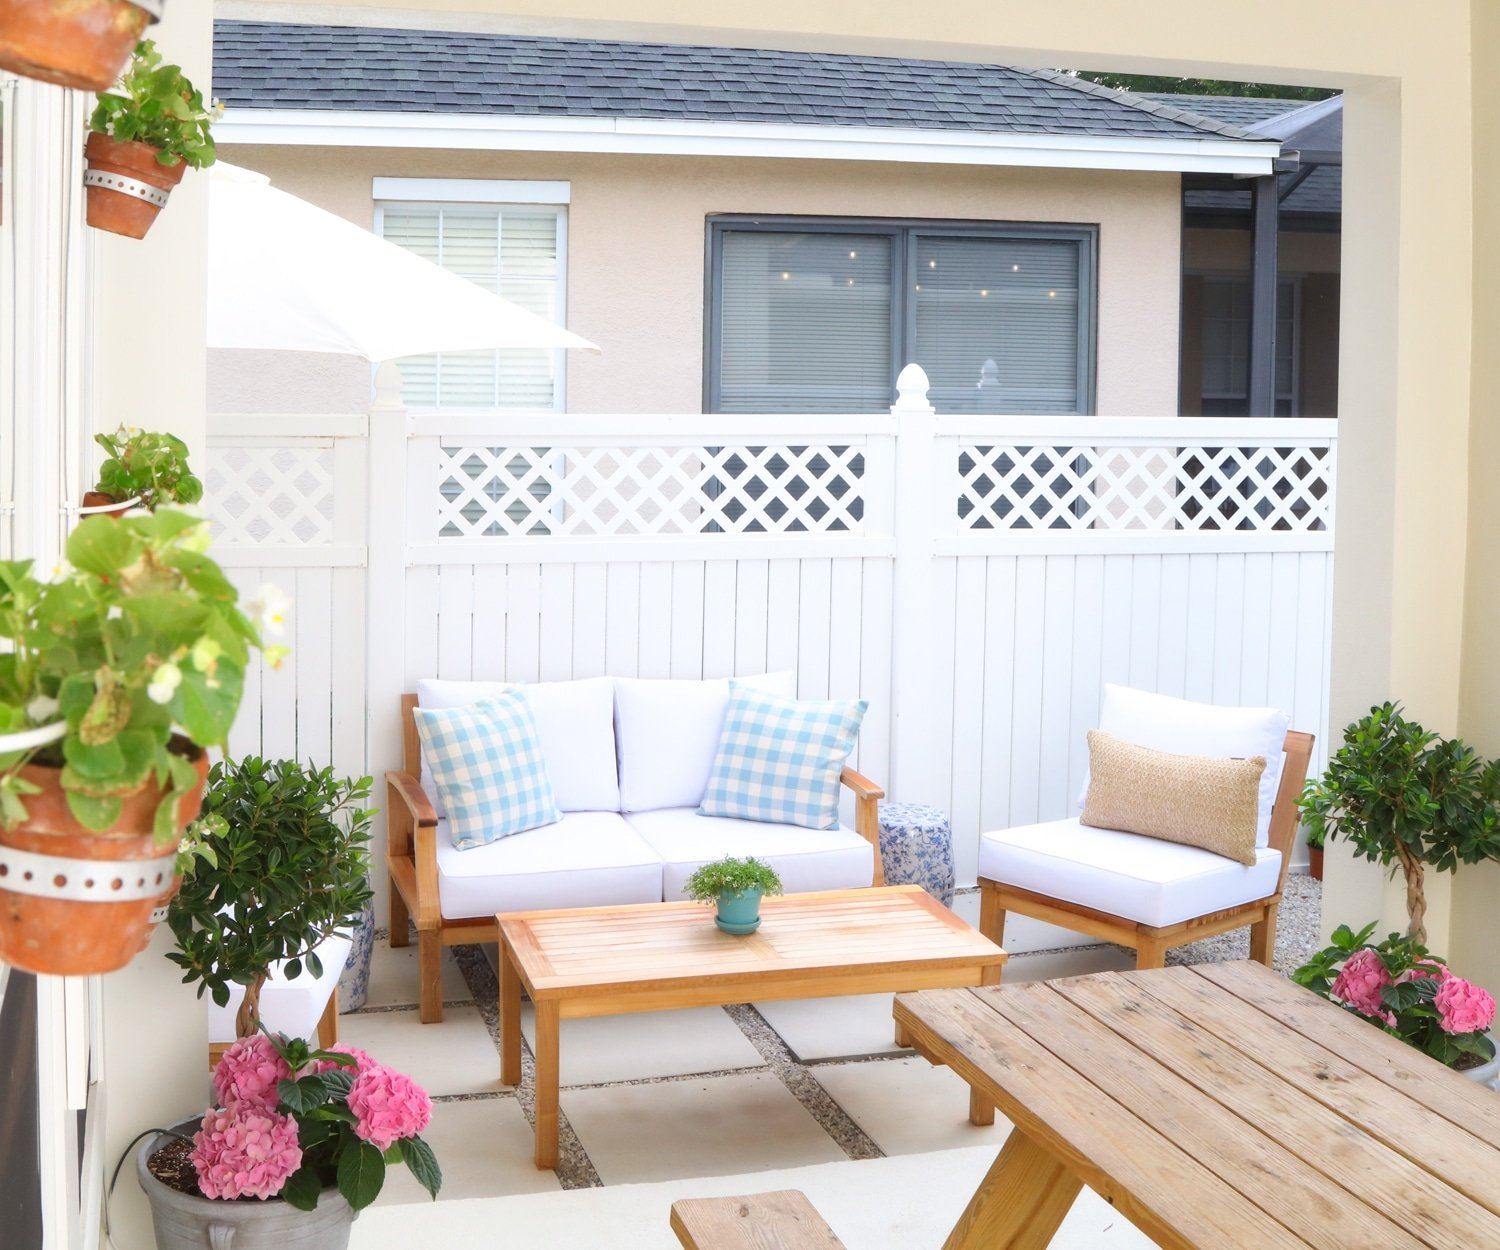 We're in love with Ashley Brooke's new DIY patio! | www.ashleybrookedesigns.com